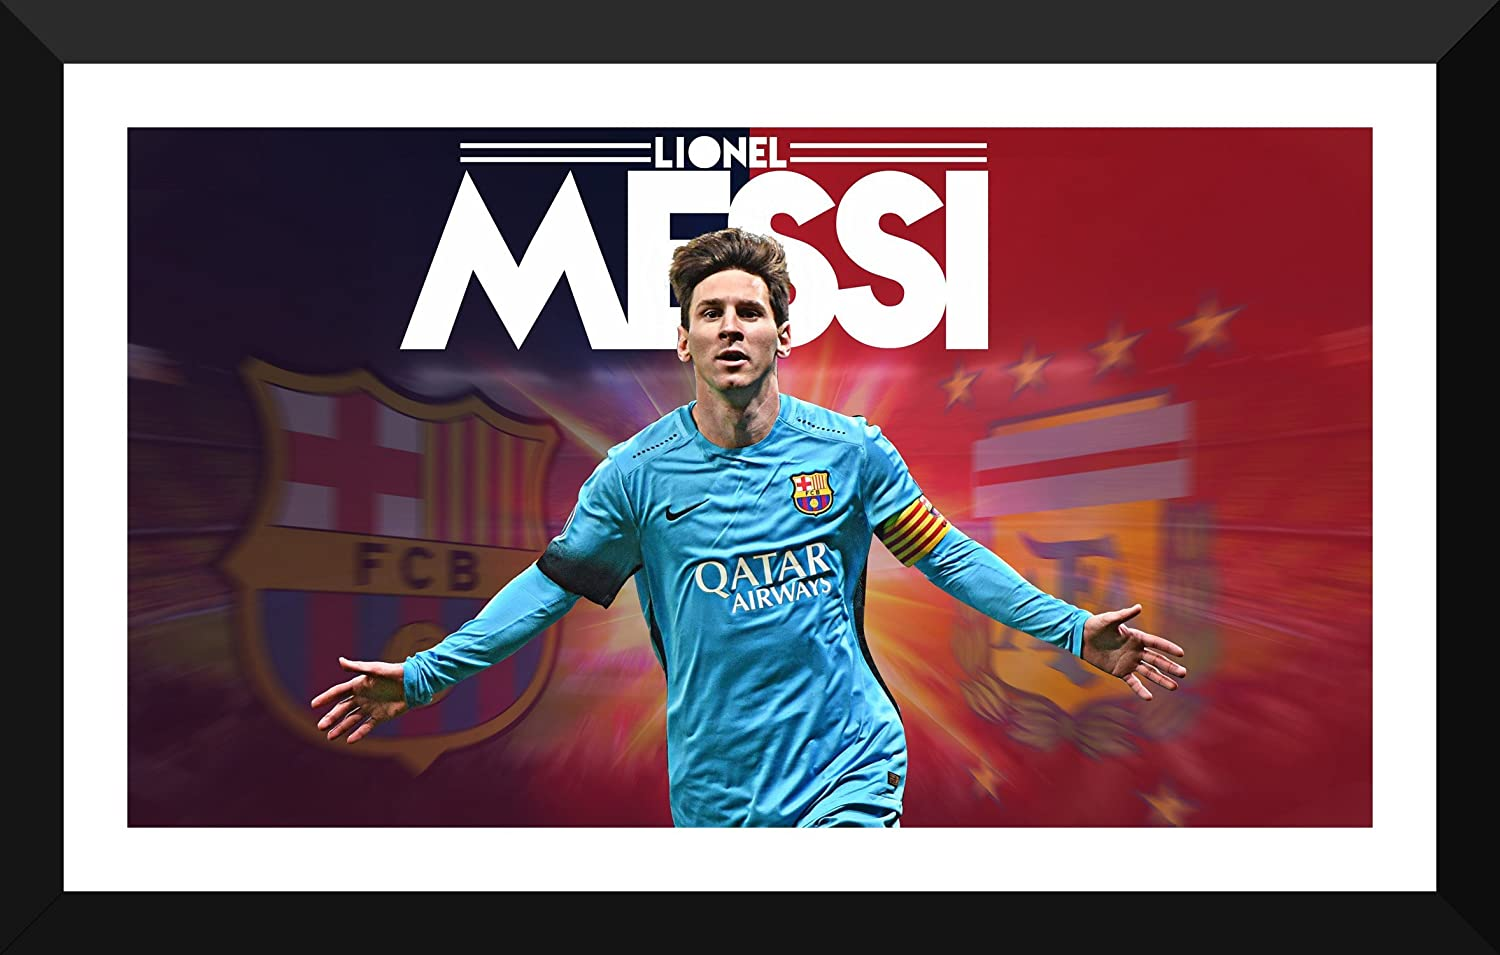 54dbc1d5232 Tallenge - Lionel Messi Football Poster 27 - Medium Poster Paper - Framed  (18 x 24 inches): Amazon.in: Home & Kitchen